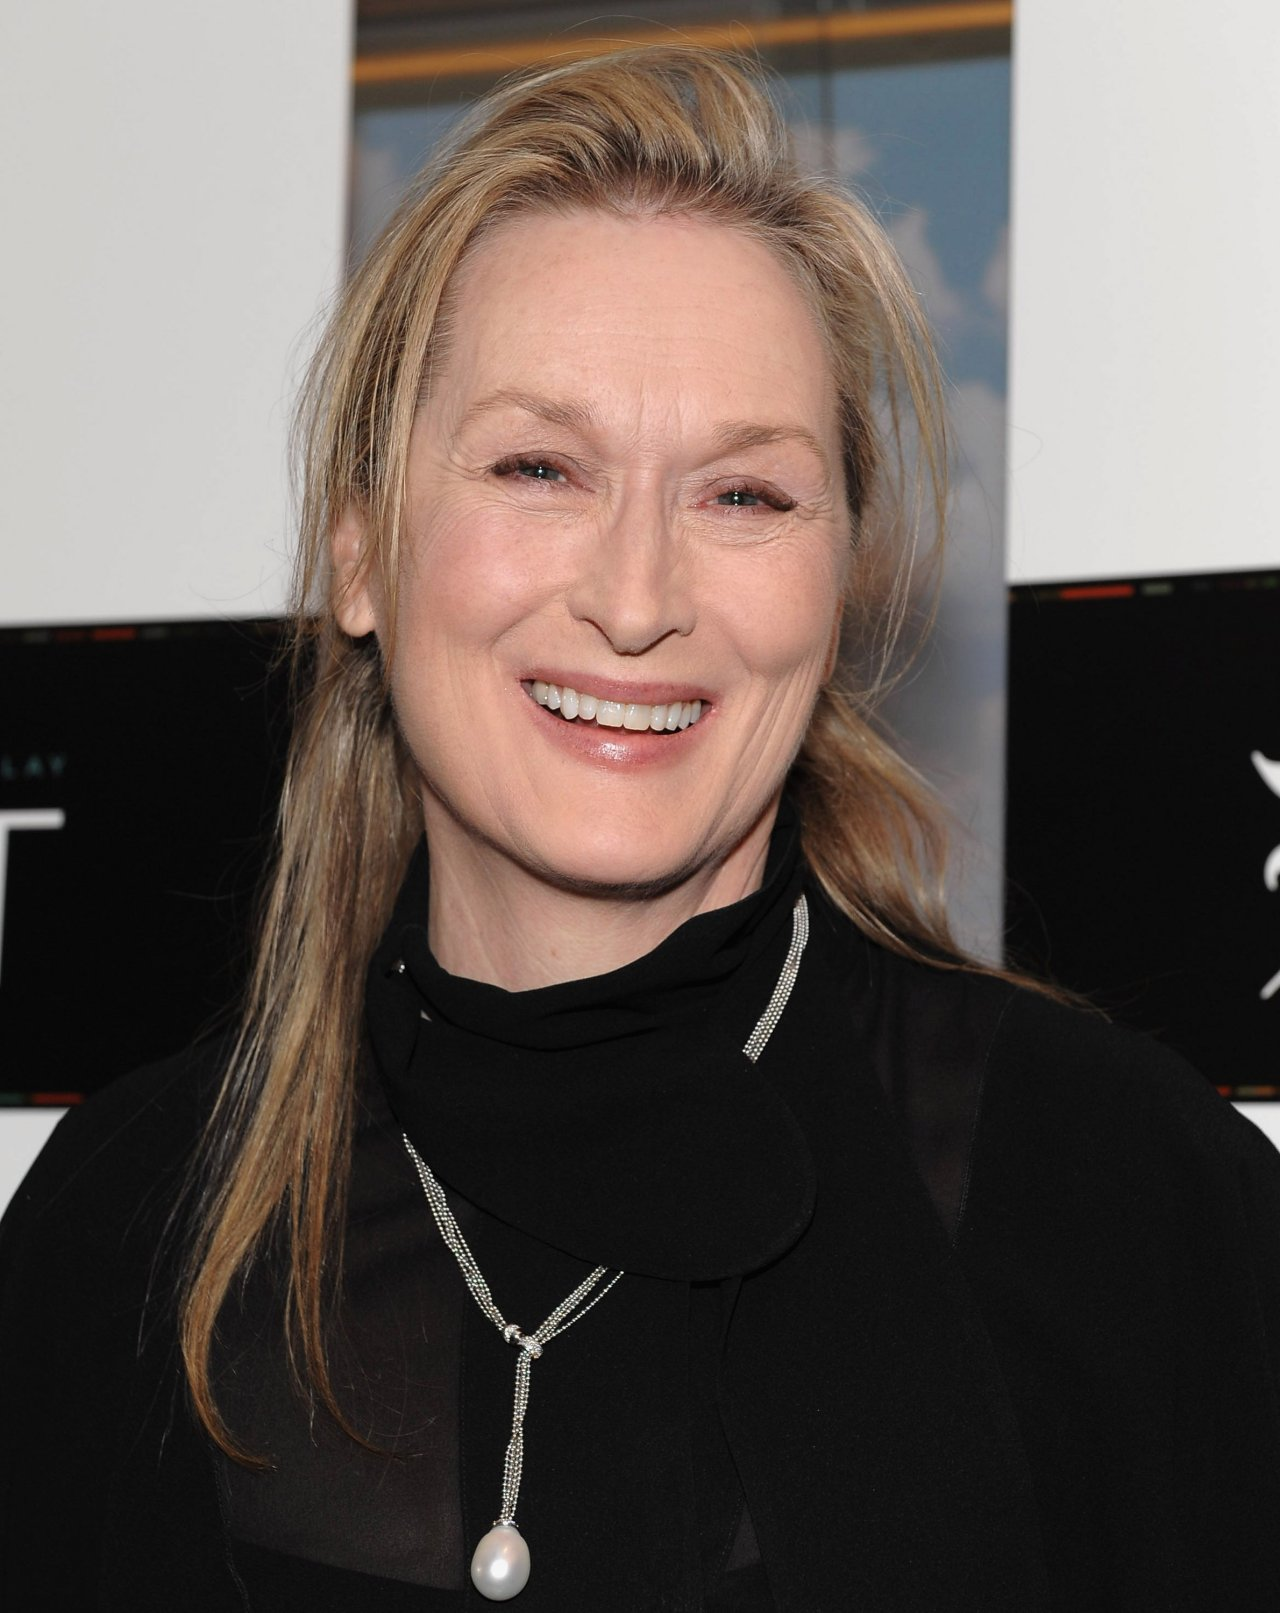 Meryl Streep - Beautiful Photos